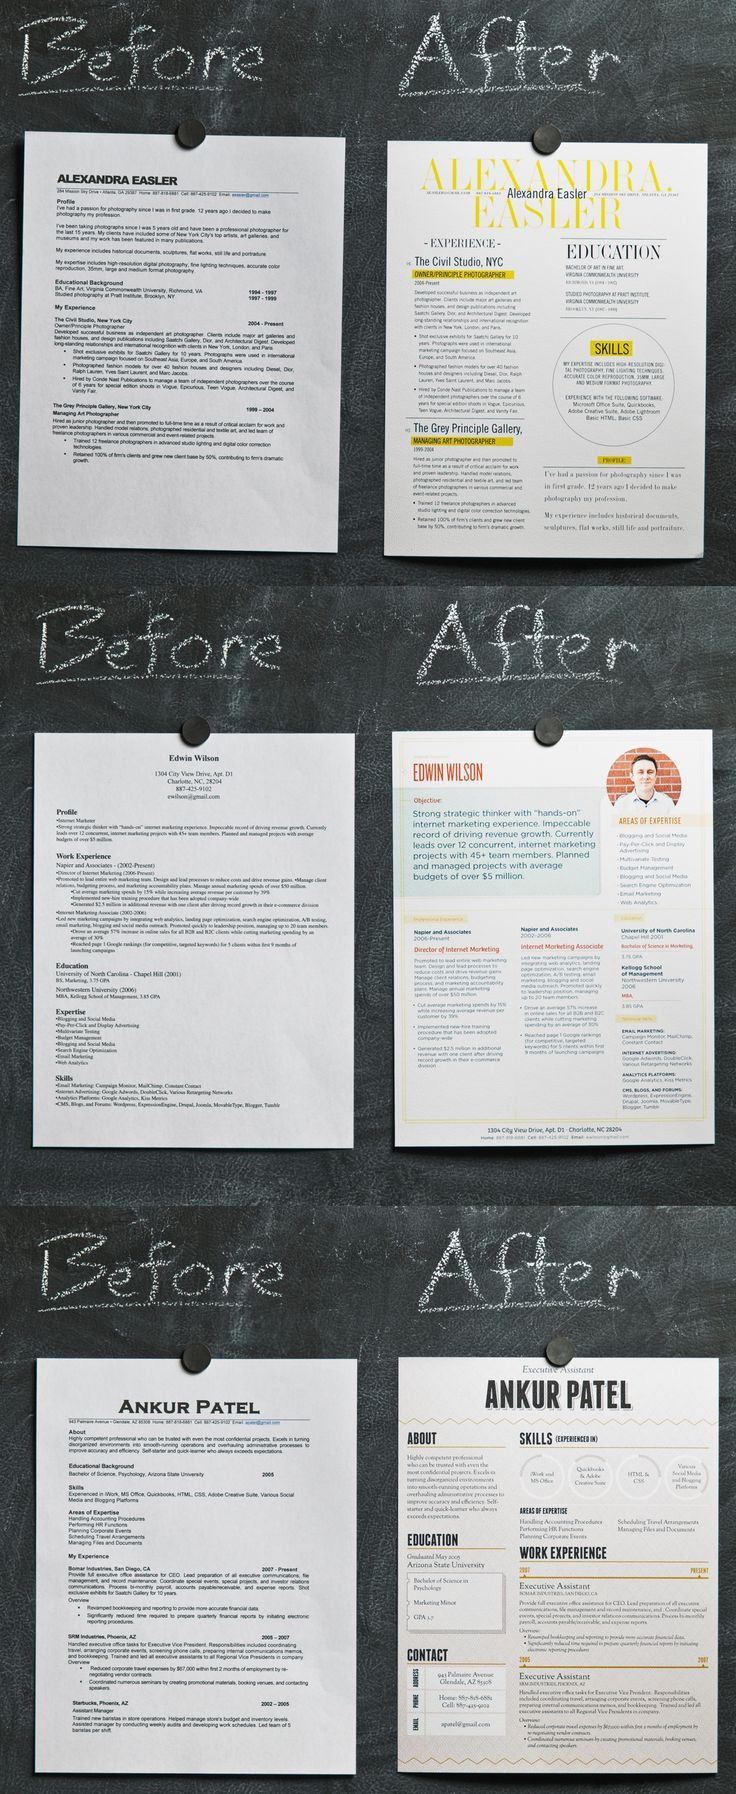 How To Make Your Resume Stand Out Unique Can Beautiful Design Make Your Resume Stand Out  Design Resume